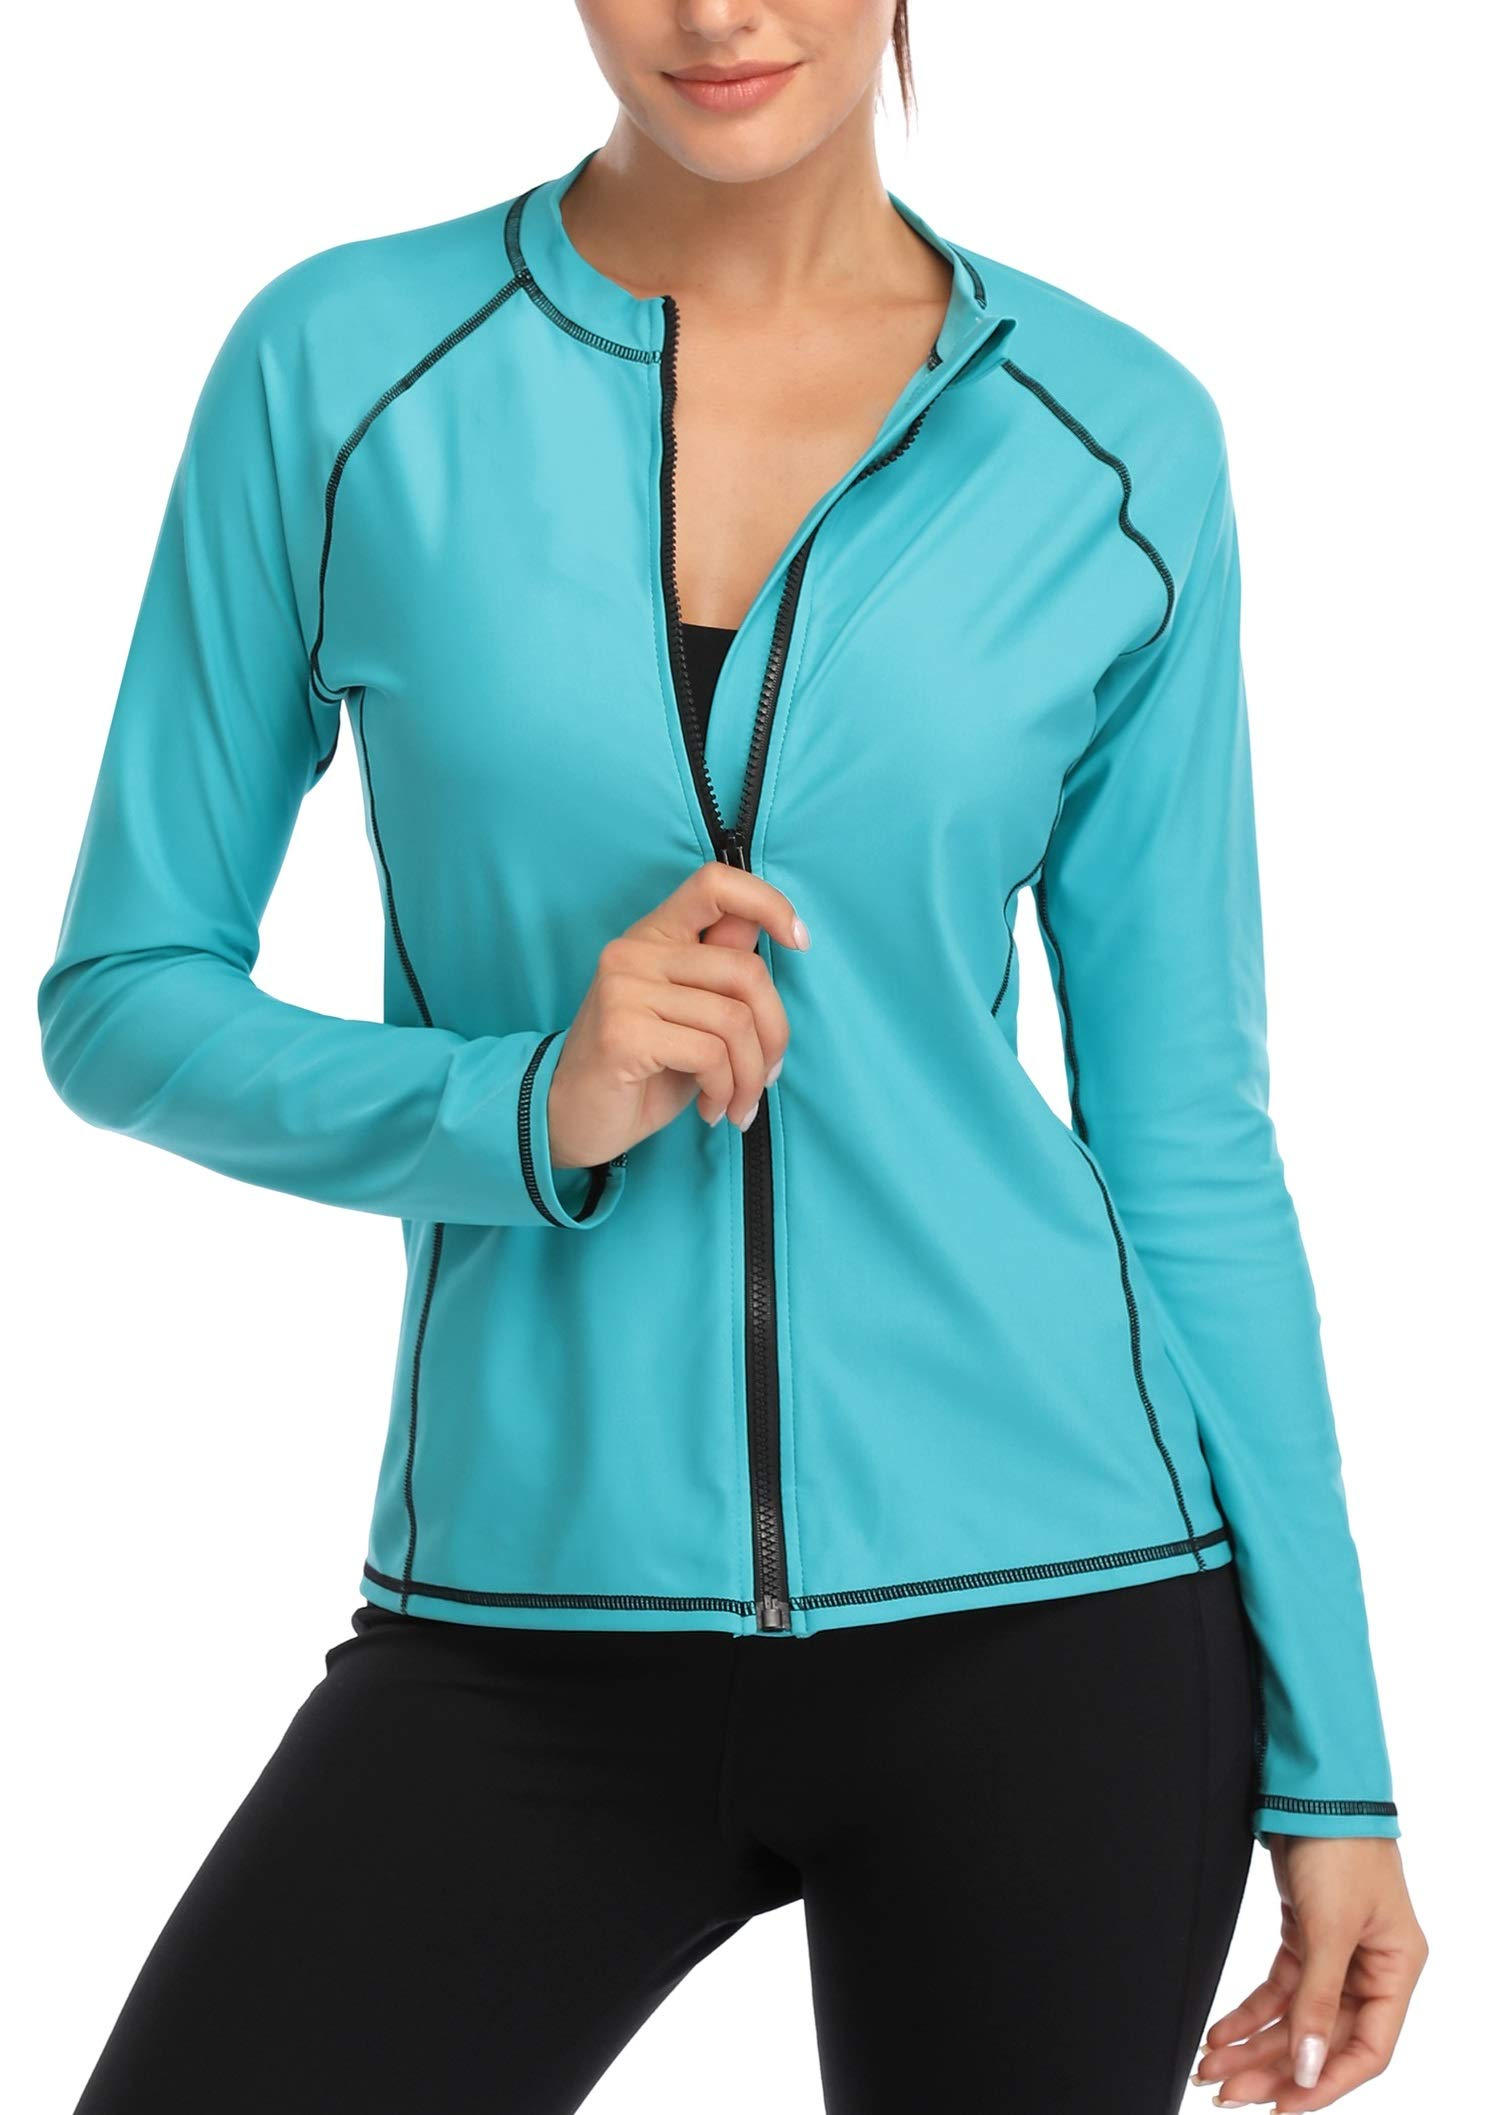 ATTRACO Women's Rashguard Top UV Sun Protect Zip Long Sleeve Swimming Shirt Aqua XL by ATTRACO